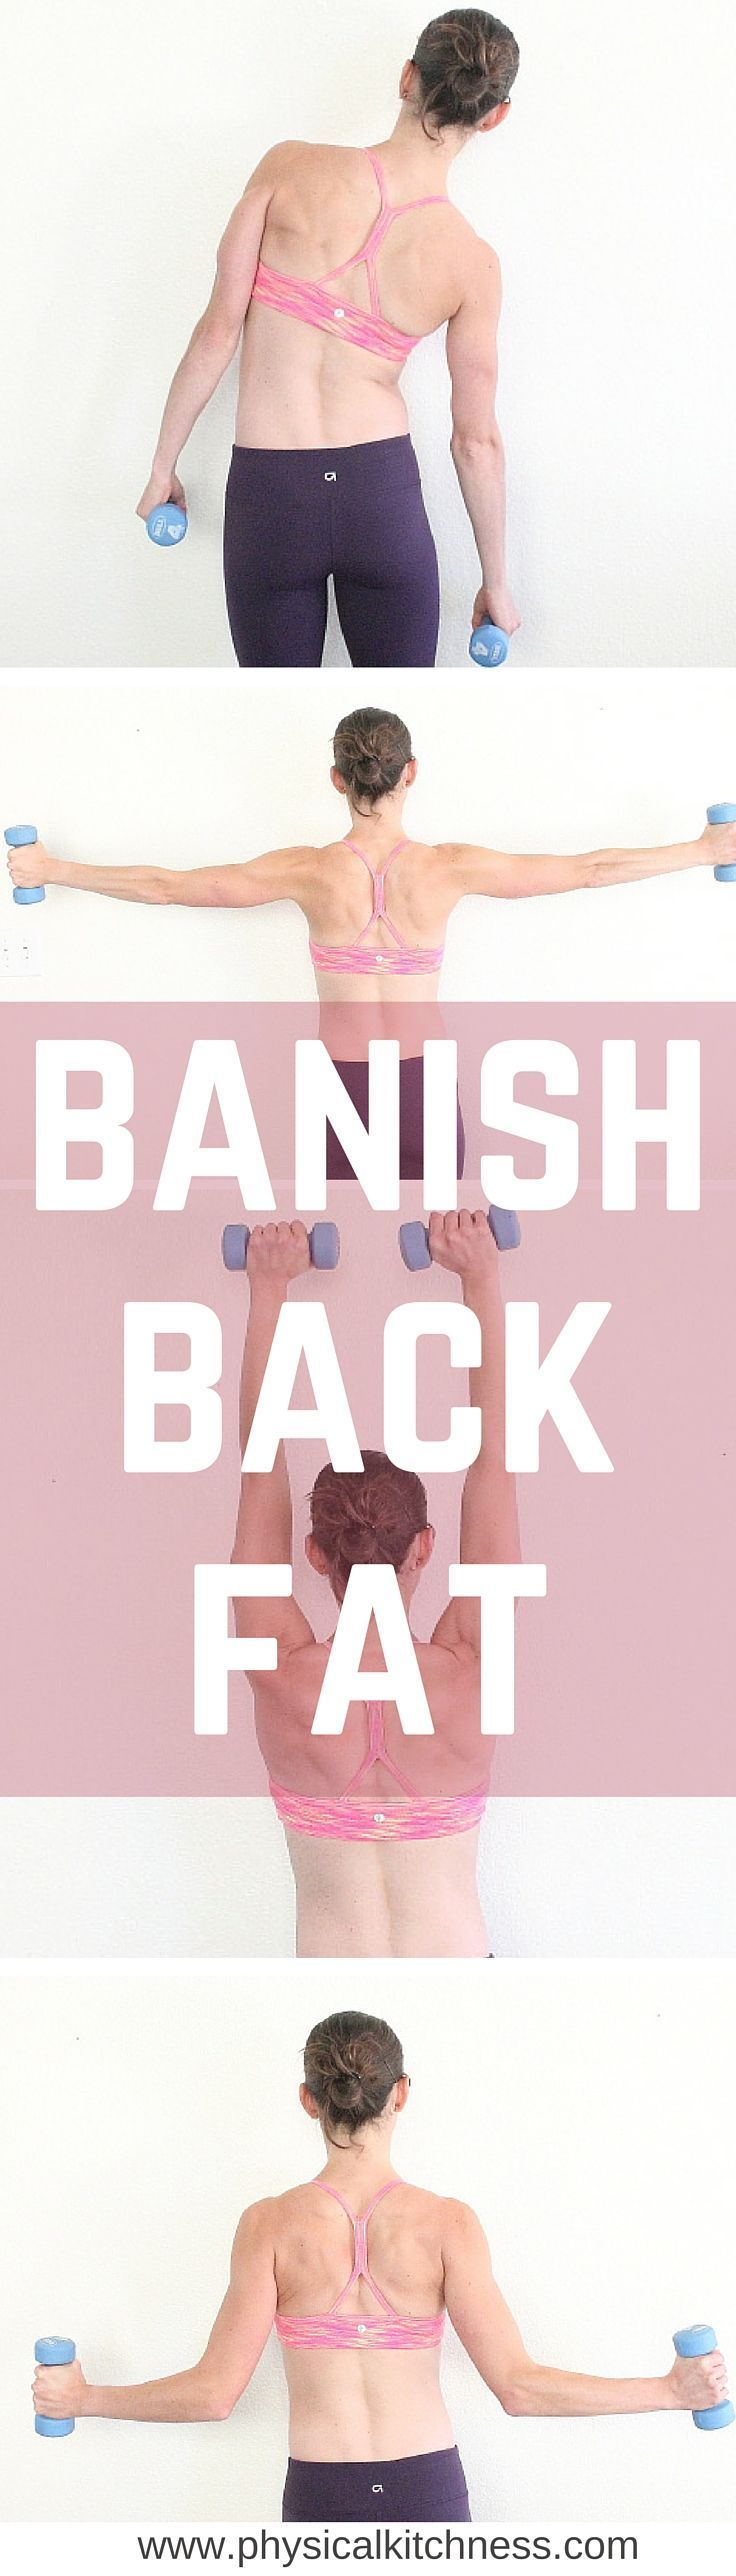 An AMAZING workout to sculpt all those sexy back muscles! Banish the back fat HERE! #livehealthy